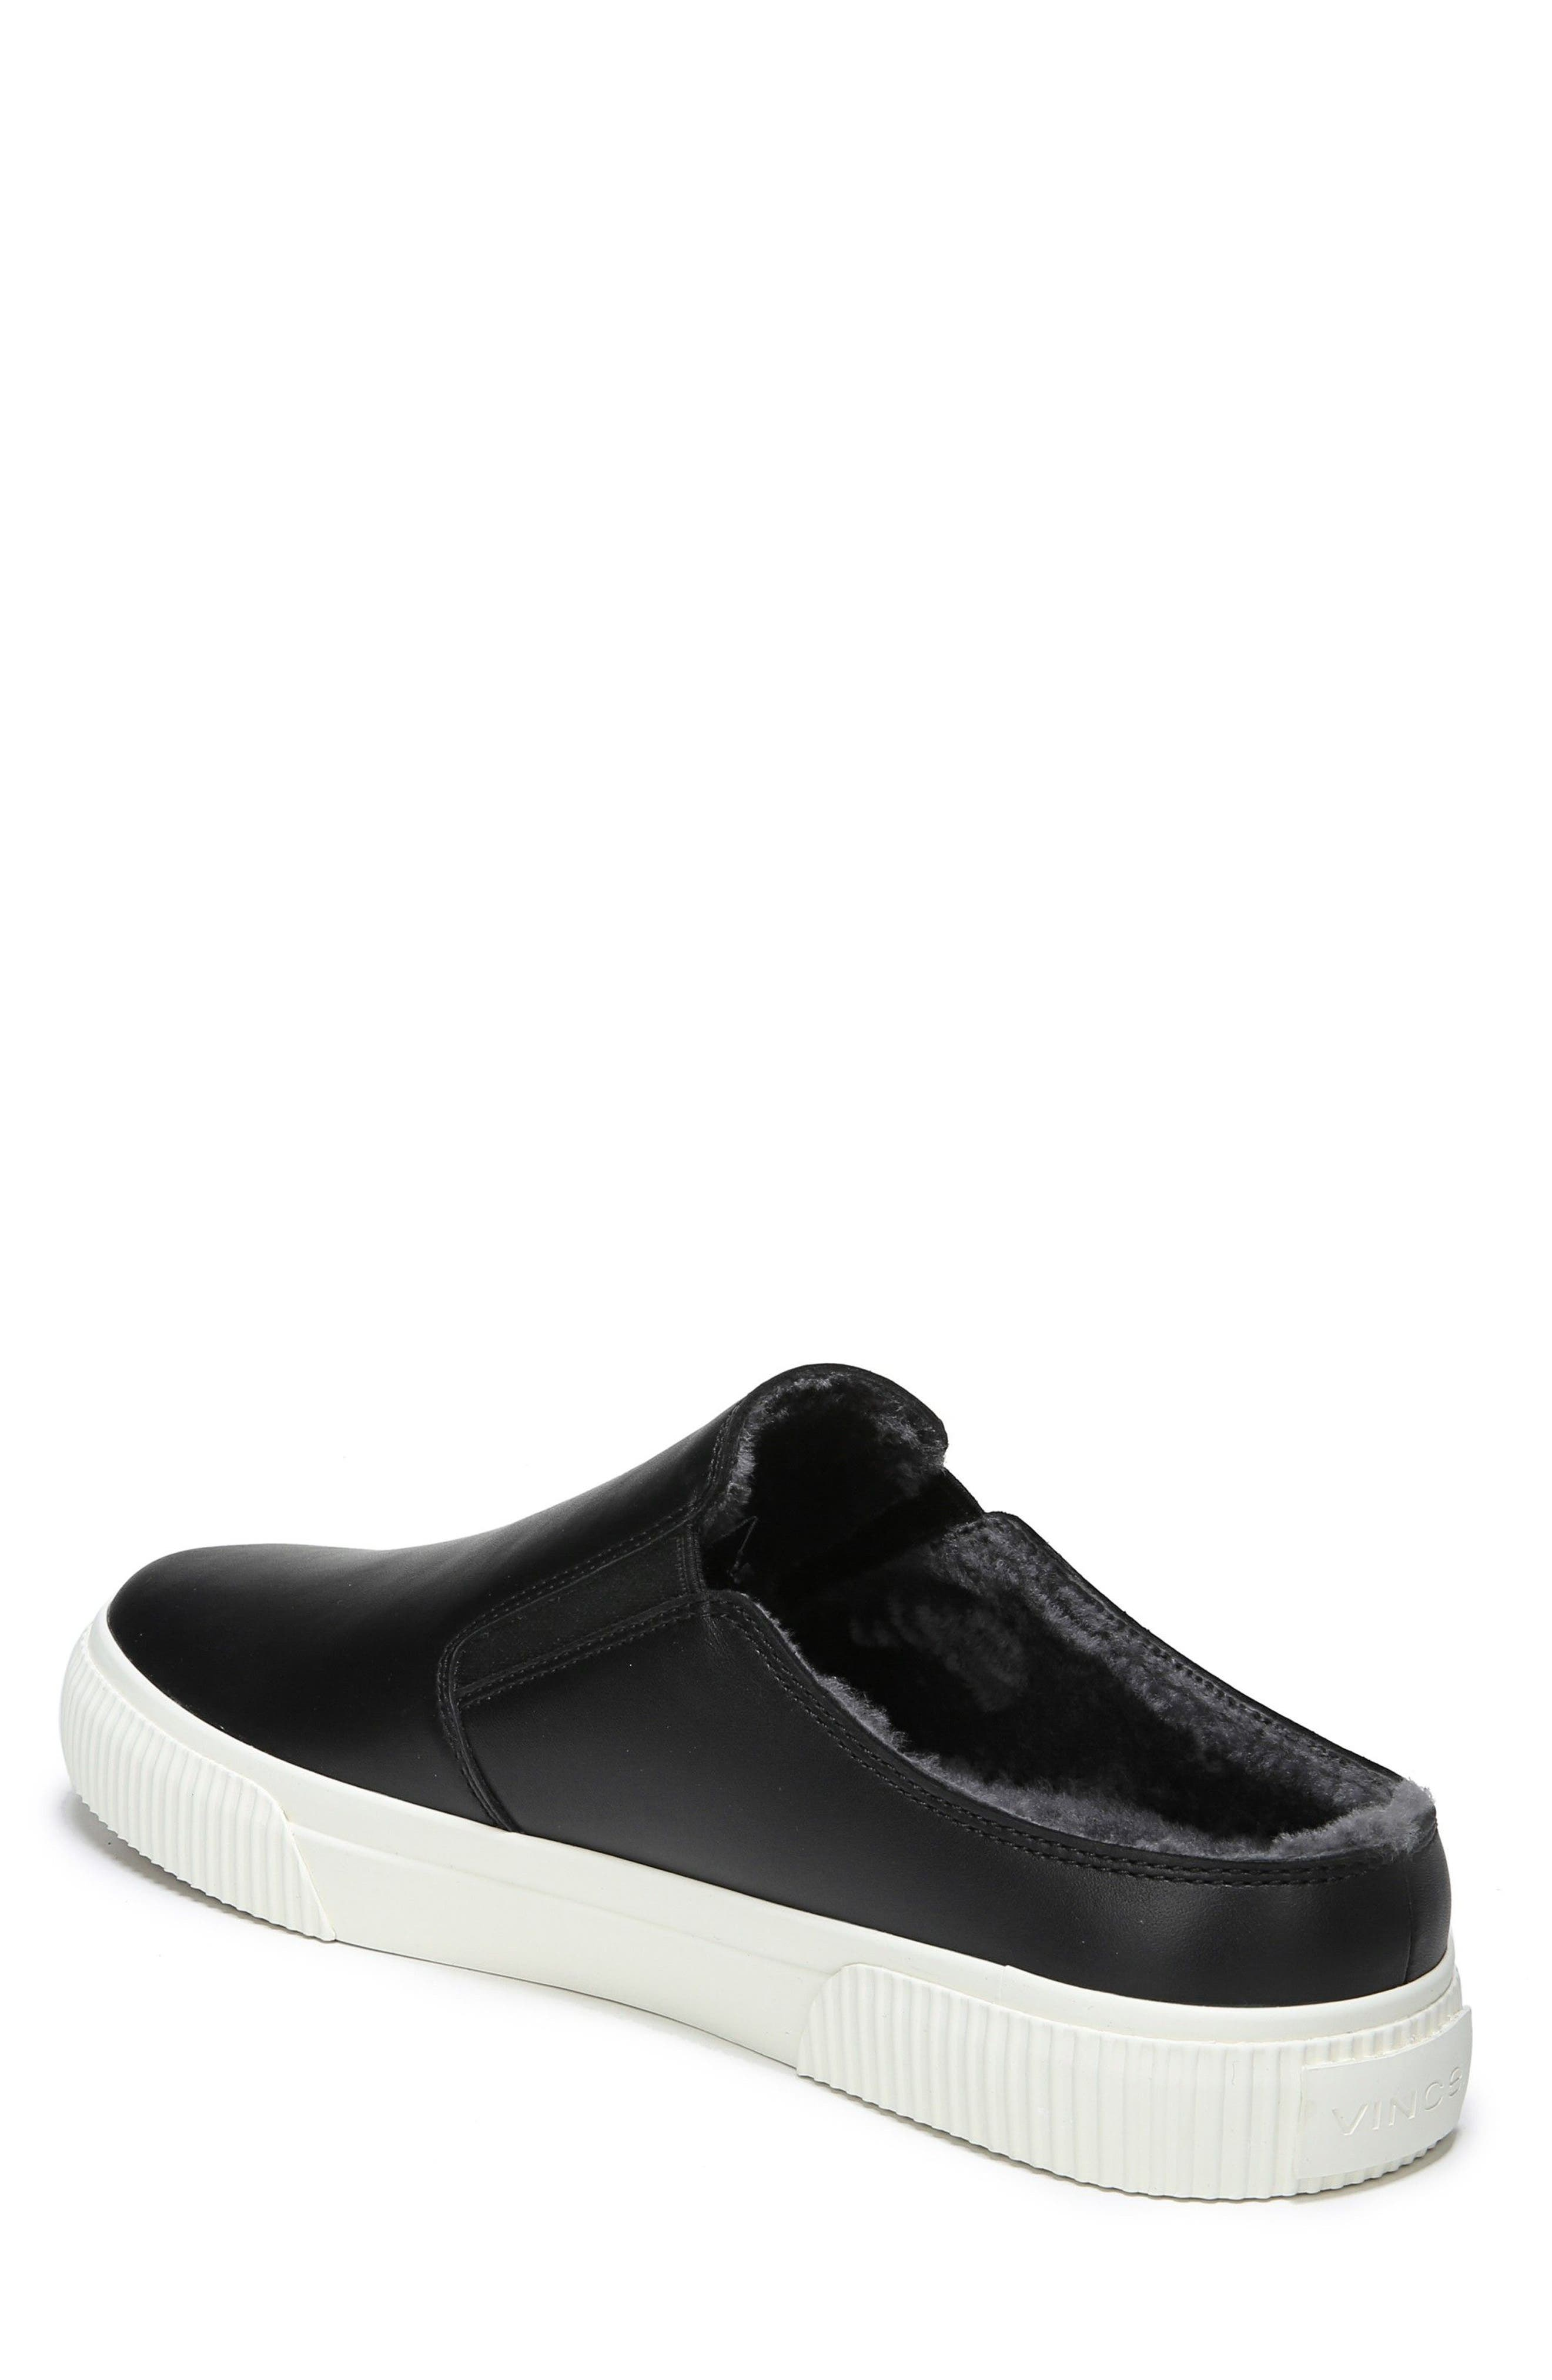 Kruger-2 Slip-On with Genuine Shearling Lining,                             Alternate thumbnail 2, color,                             001